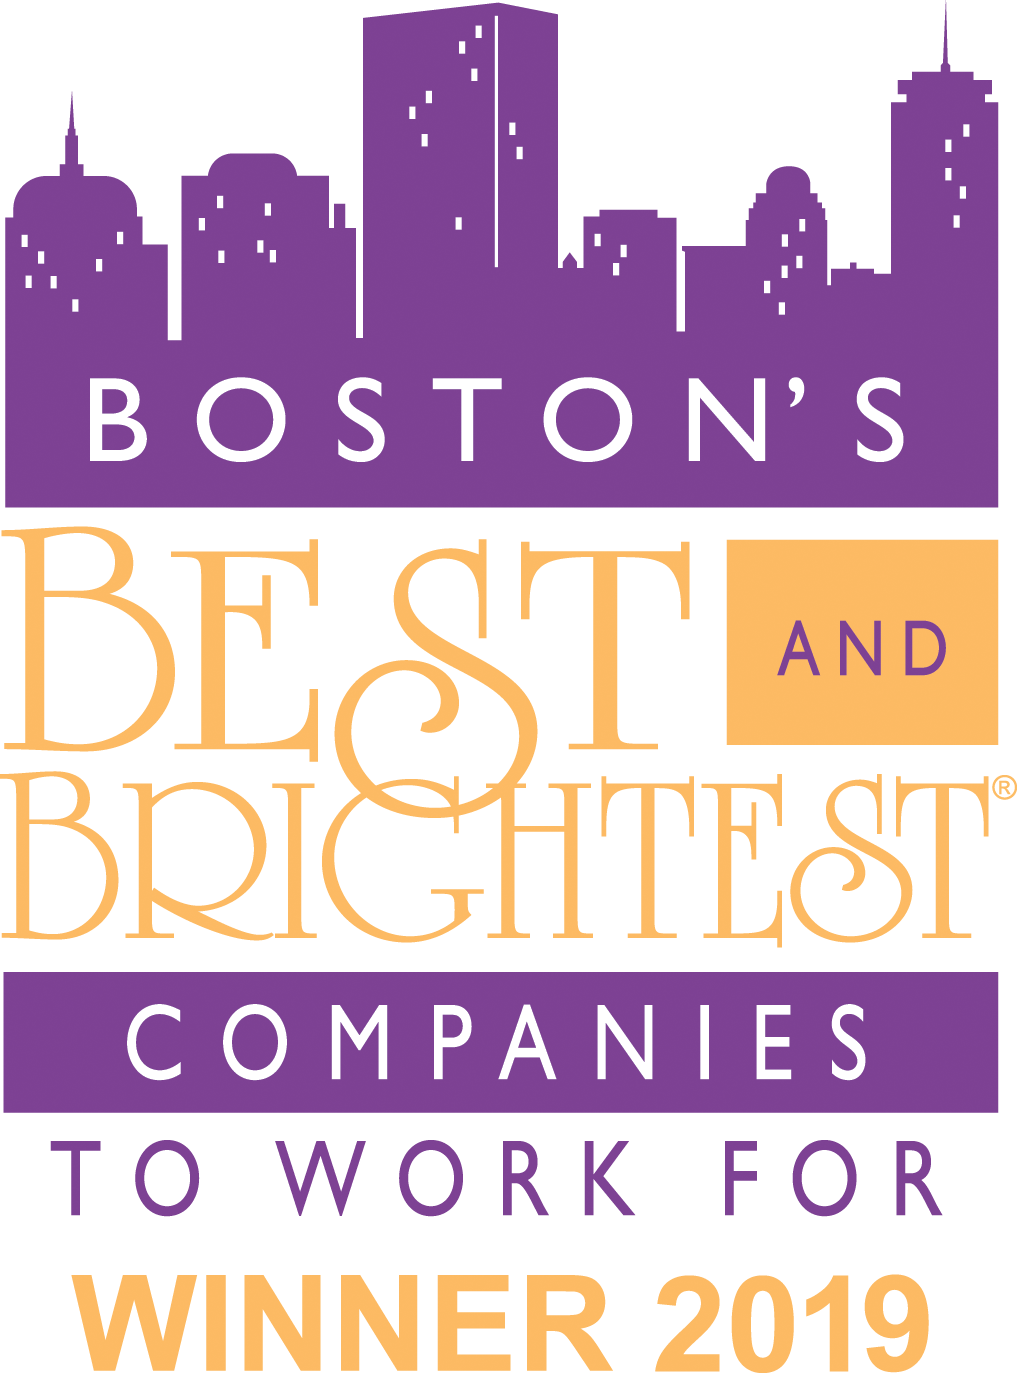 boston best and brightest 2019